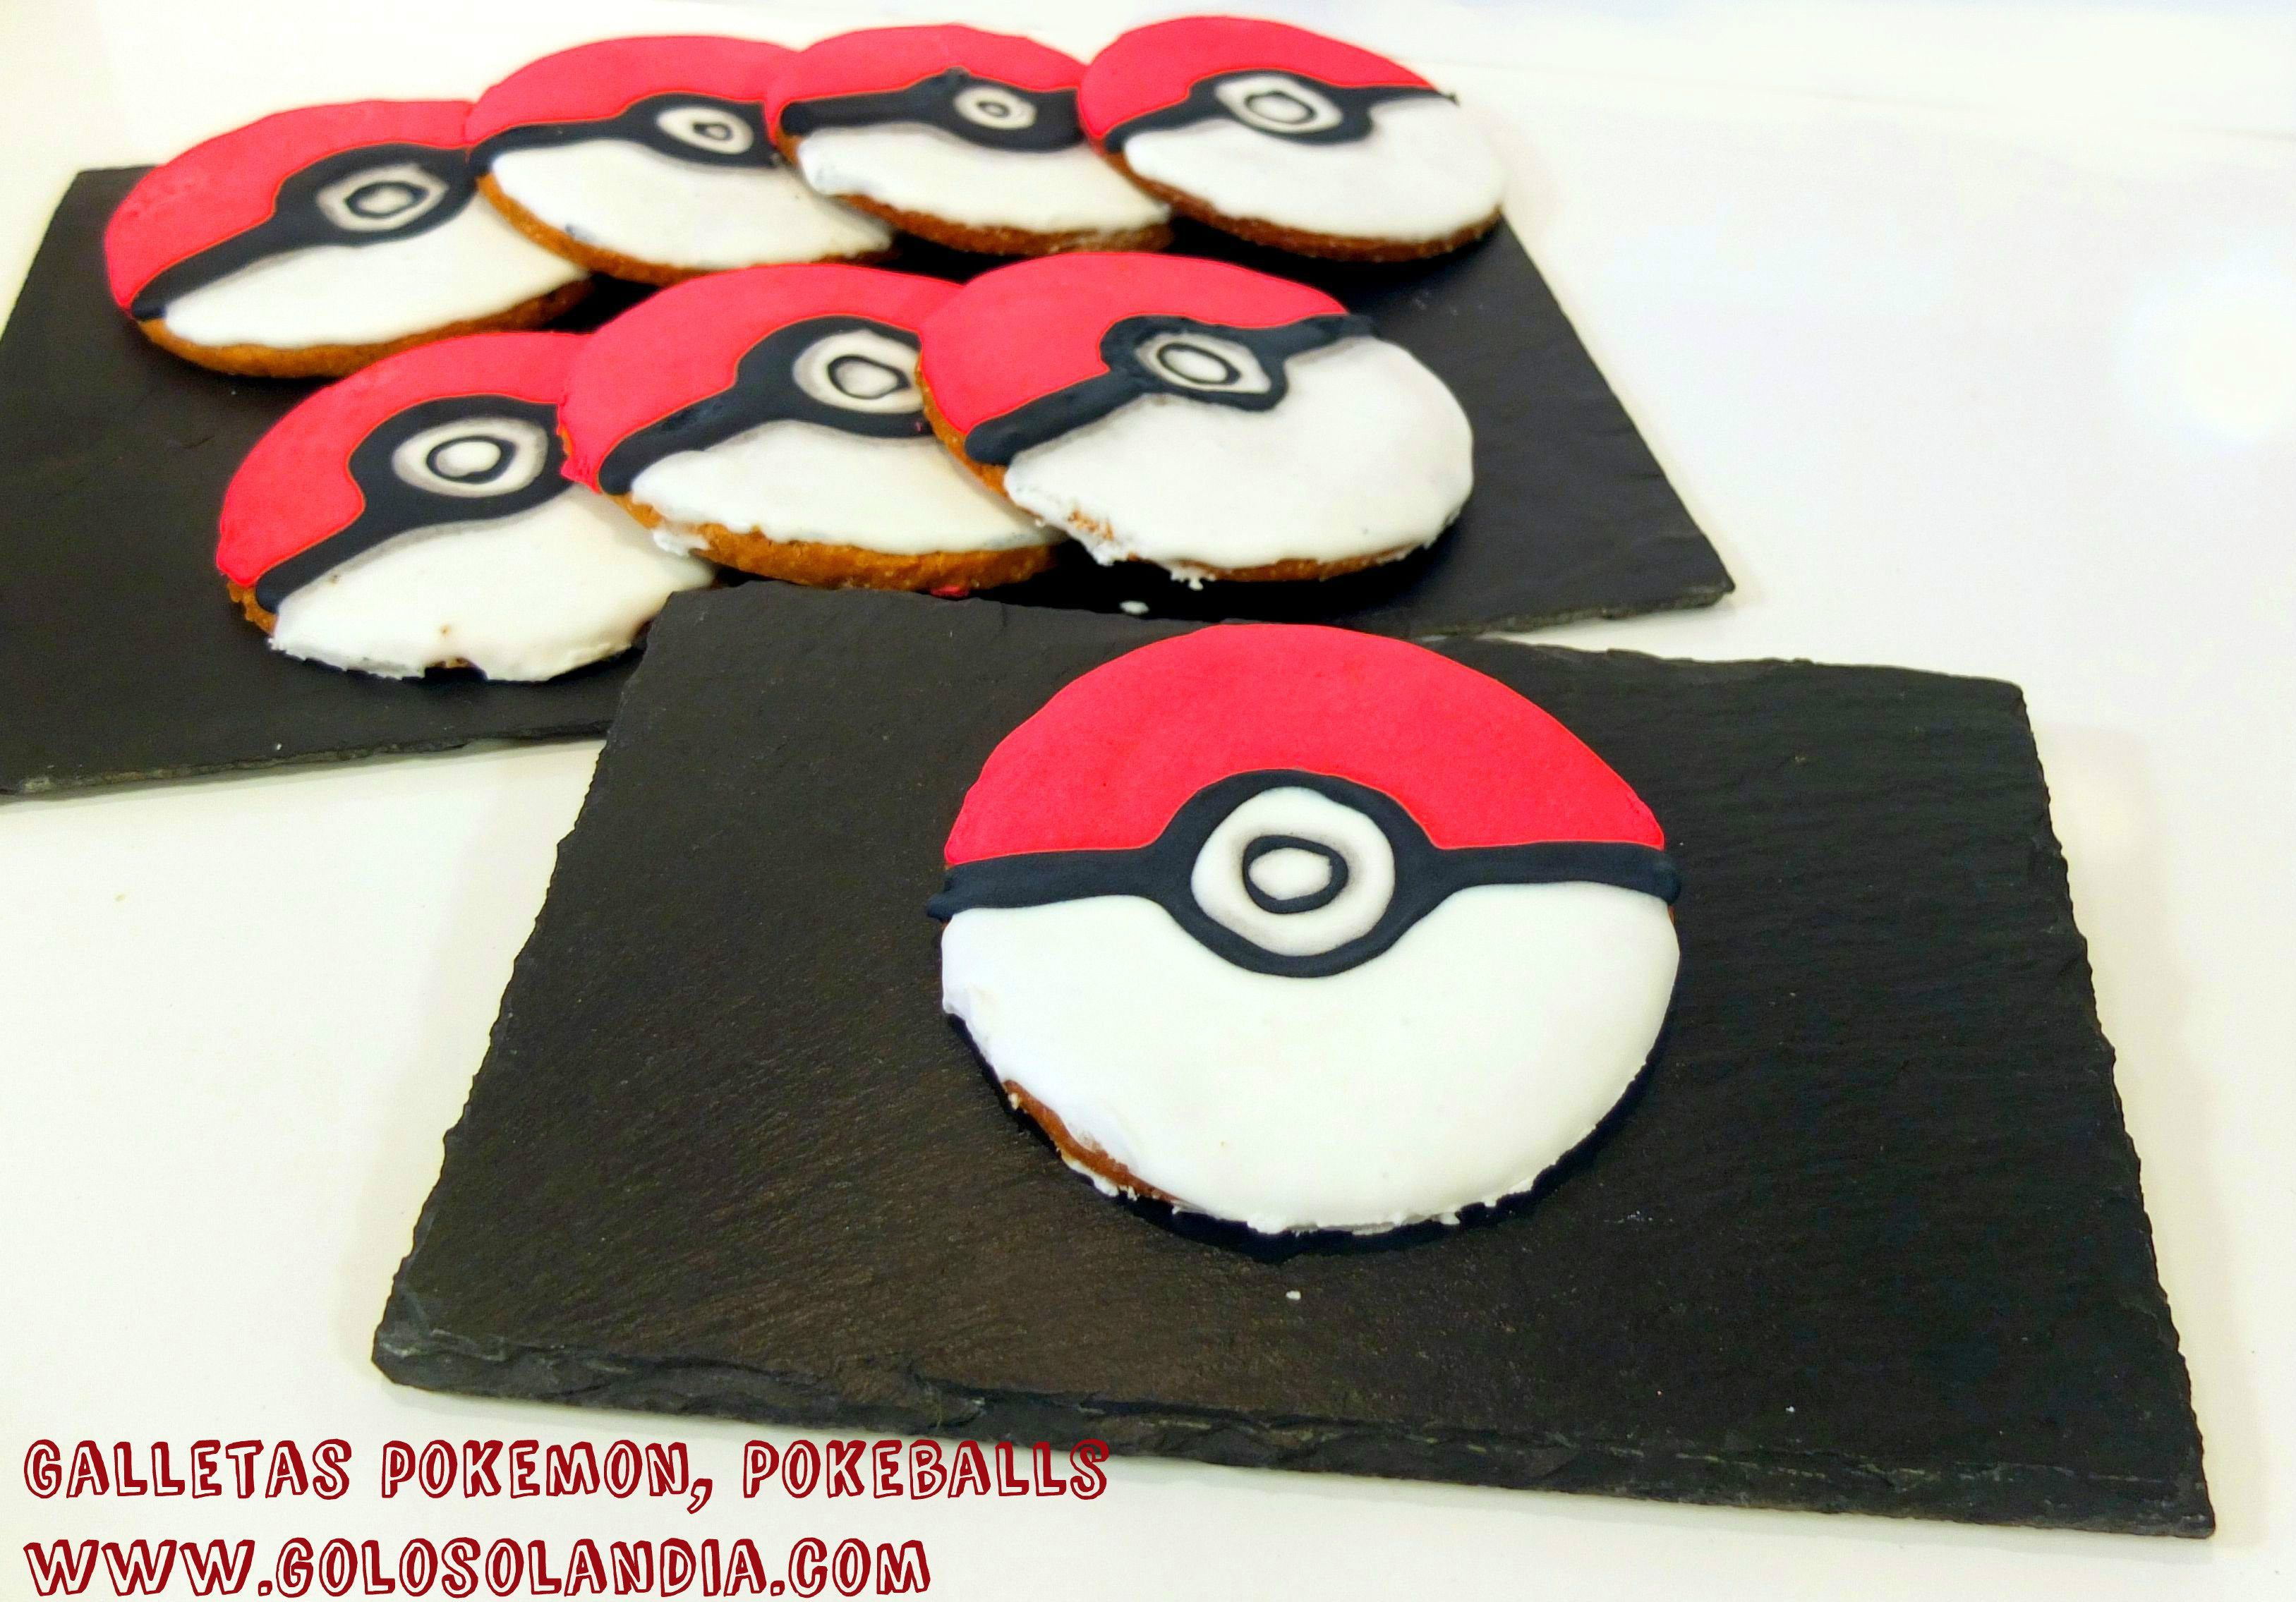 #galletas #pokemon ¿tambien te gustan estan estas pokeballs?  receta y vídeo paso a paso #golosolandia https://youtu.be/aBoezDBjj9c